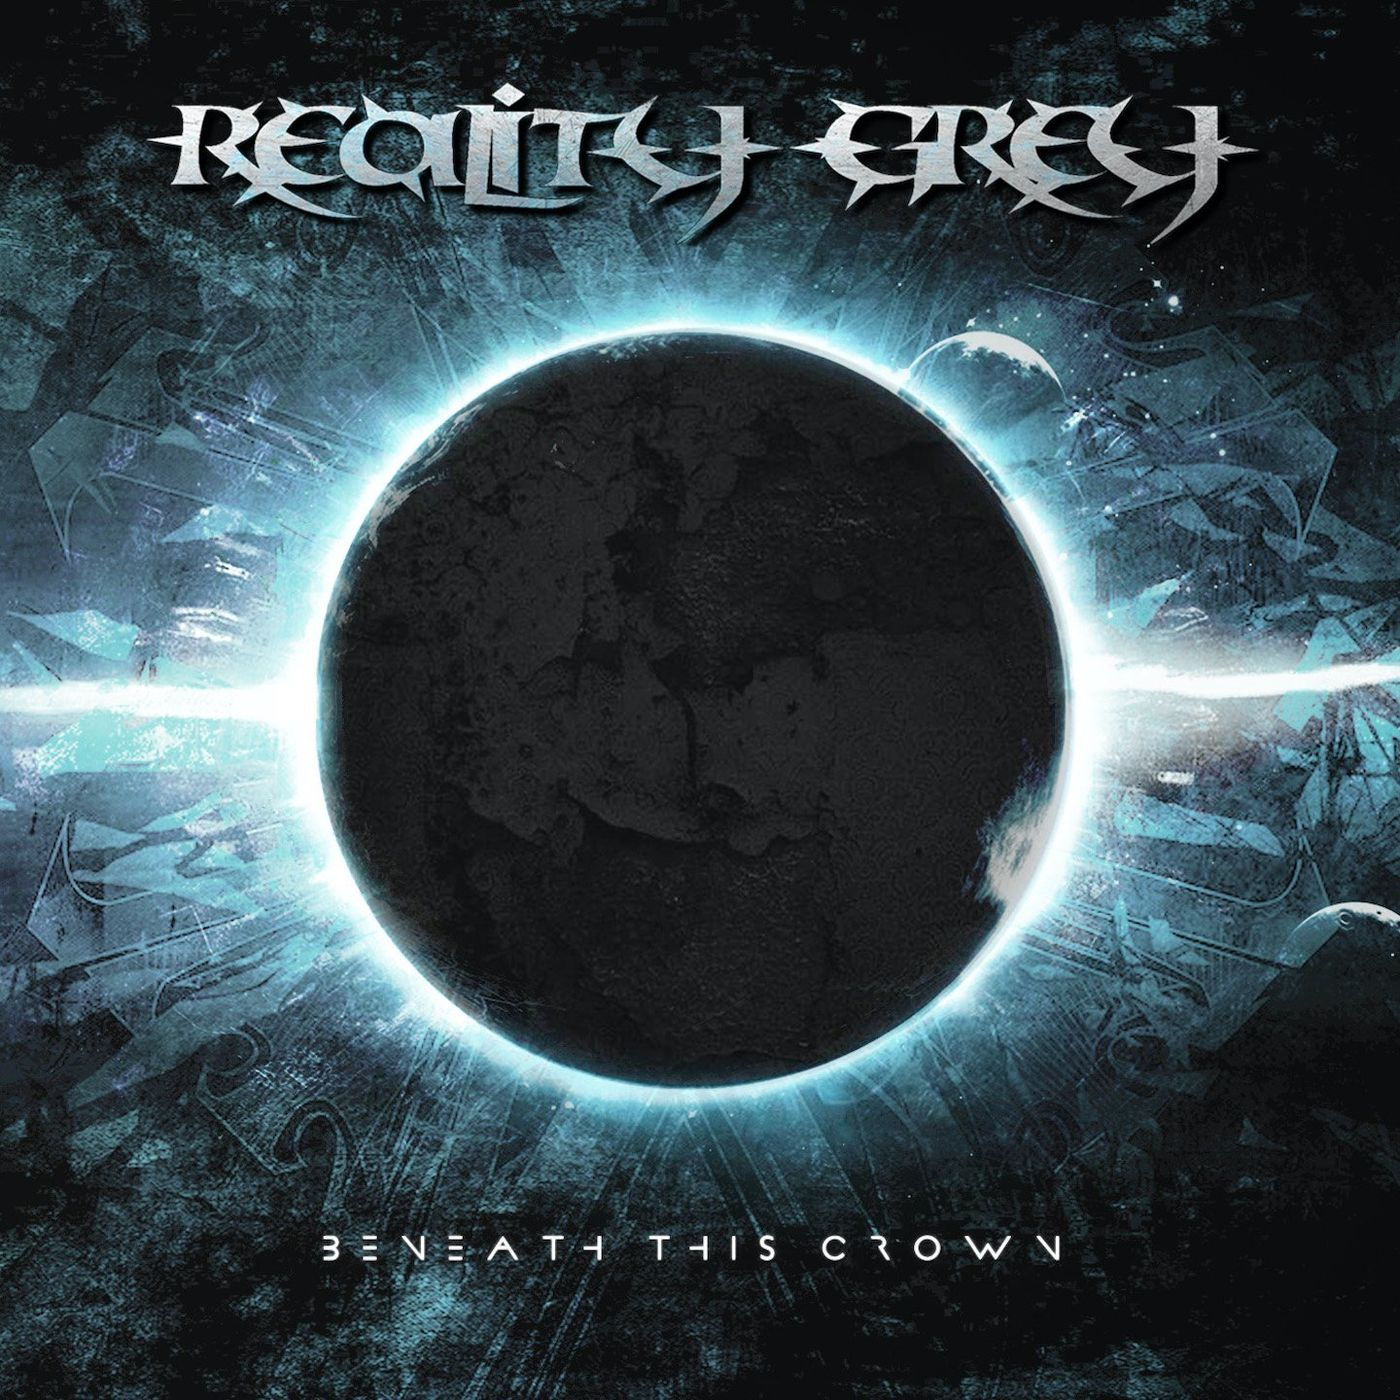 Reality Grey - Beneath This Crown (2021)